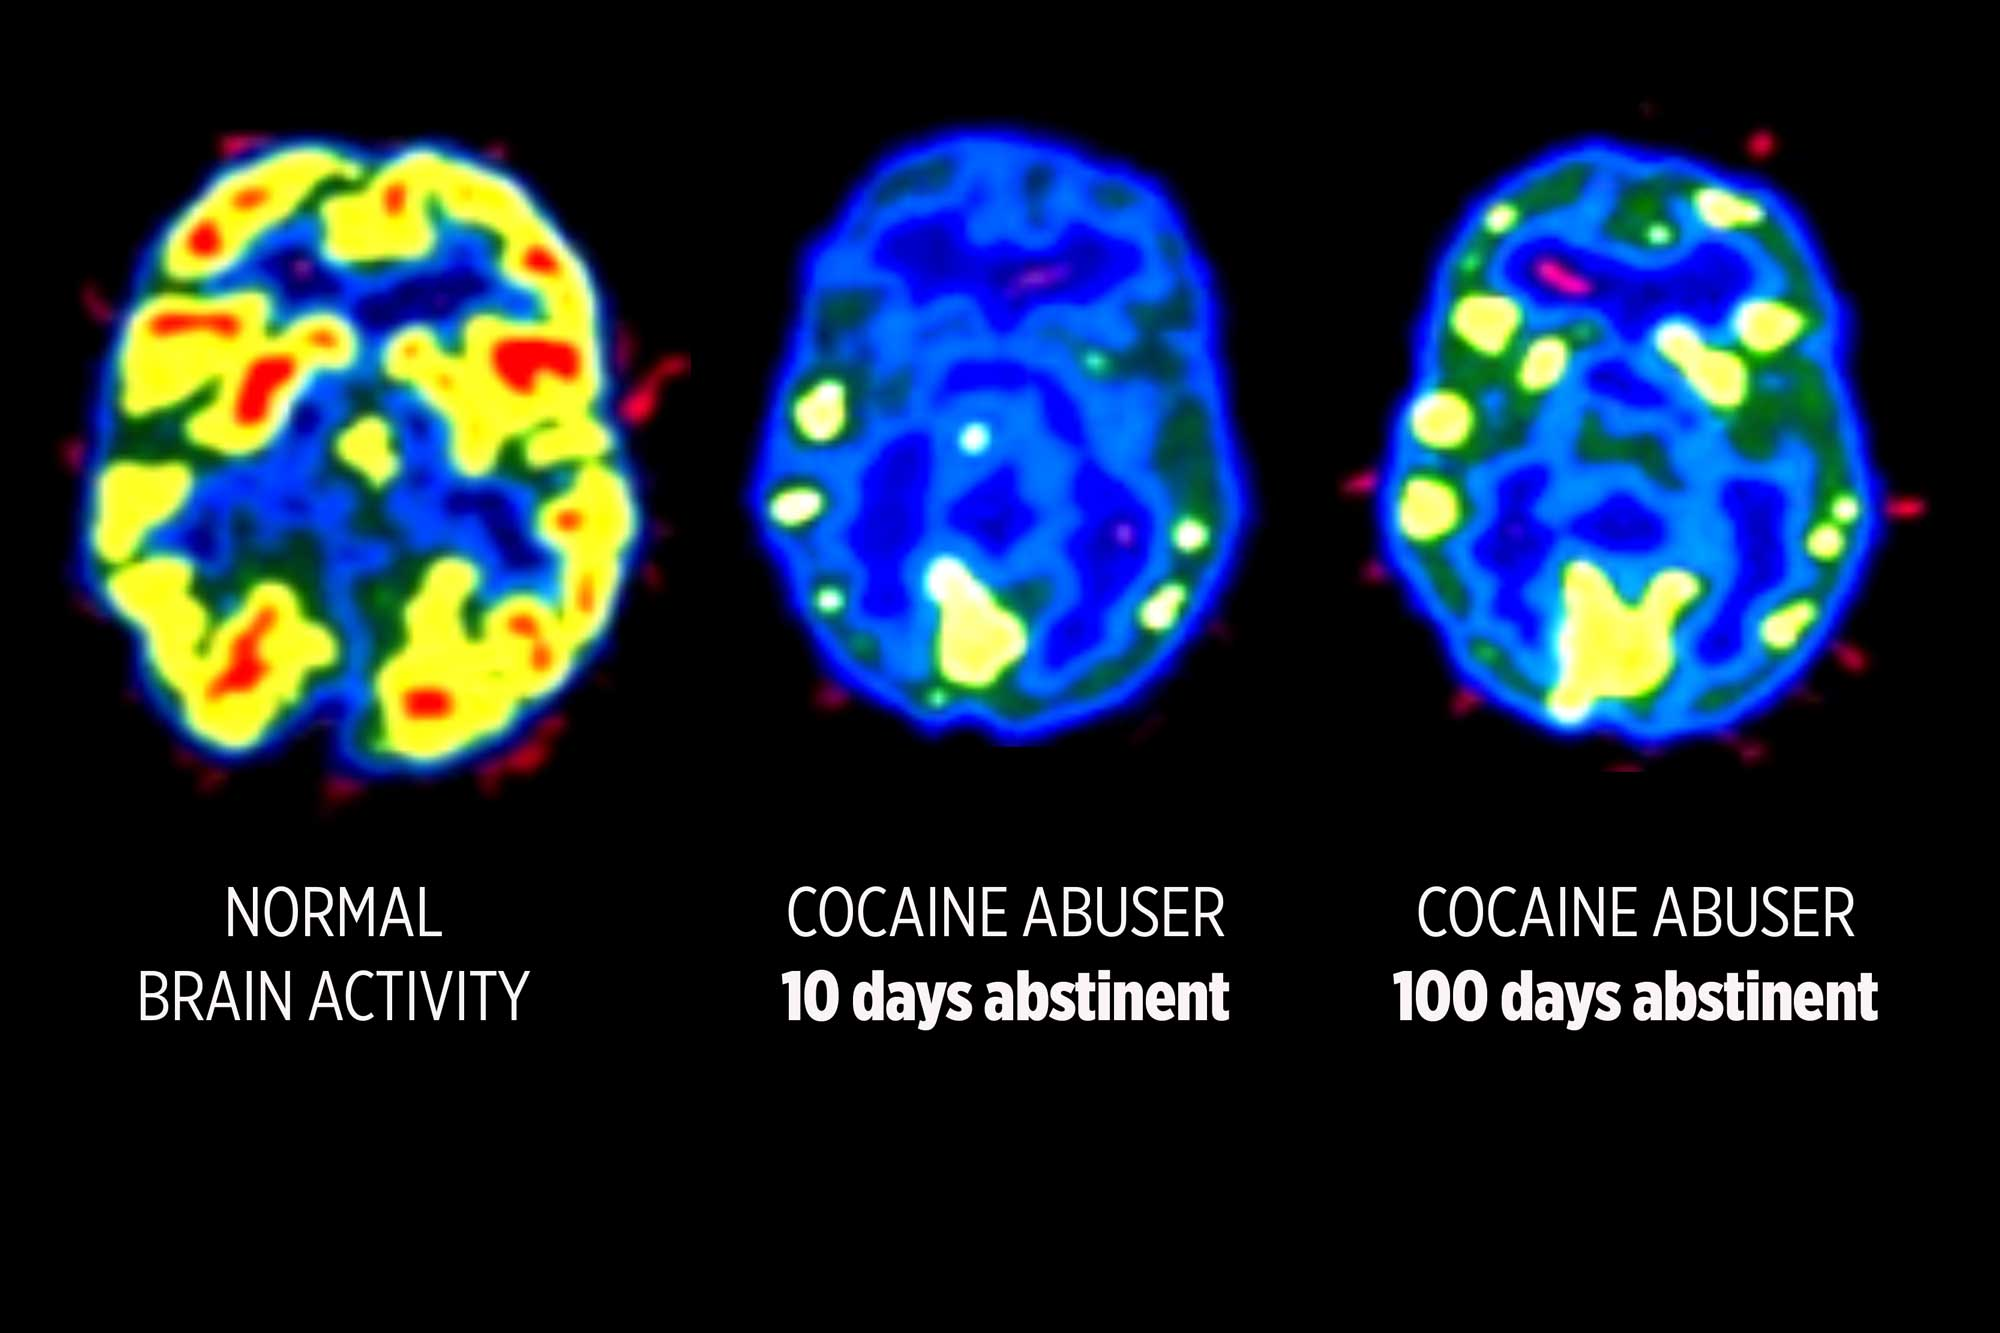 Enhanced PET scans using radioactive tracers show reduced neurotransmitter activity even months after last cocaine use. Cocaine affects brain activity very differently ó and more visibly ó than opioids. But addictions of all kinds can change responses in ways that are beyond an individualís control.  SOURCE: Nora D. Volkow, et. al. (1993)